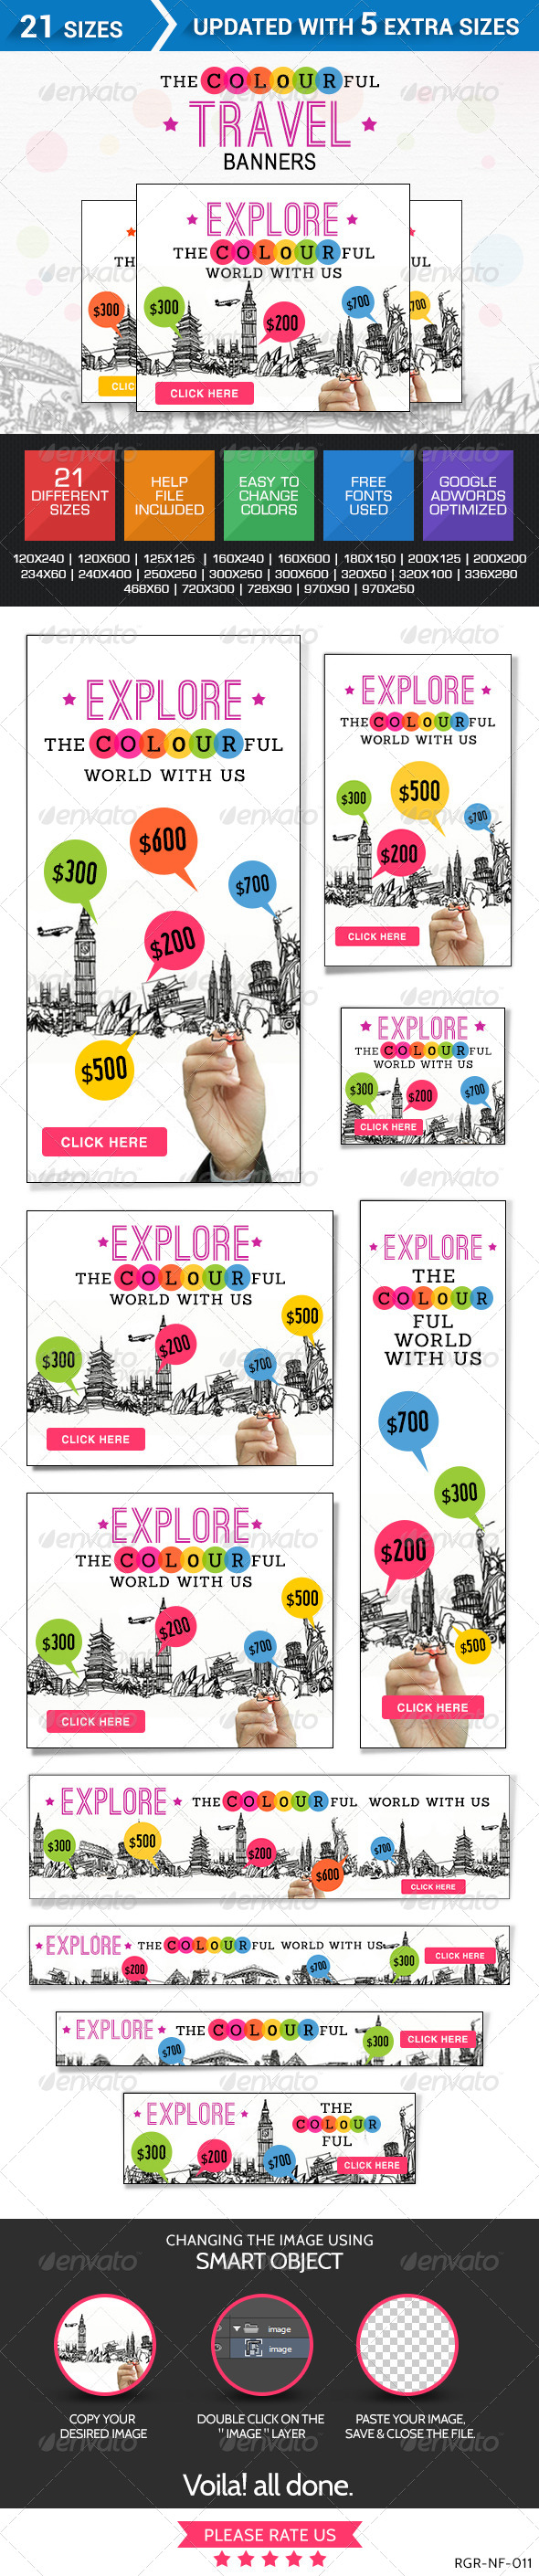 Colourful Travel Banner Set - Banners & Ads Web Elements